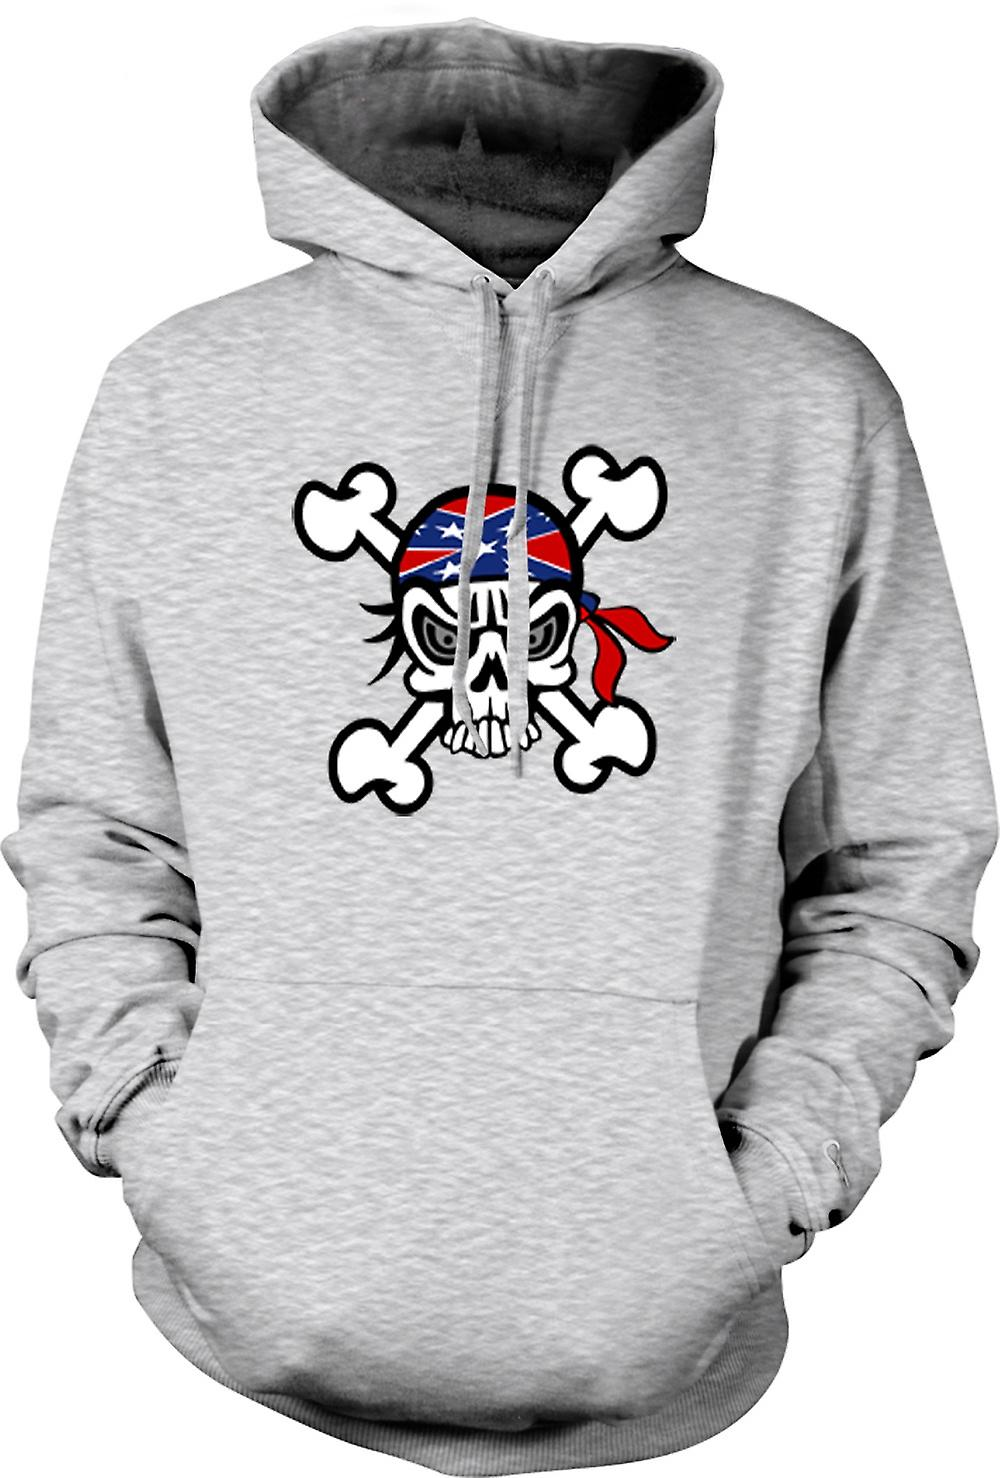 Mens Hoodie - Skull with Bandana & Cross Bones